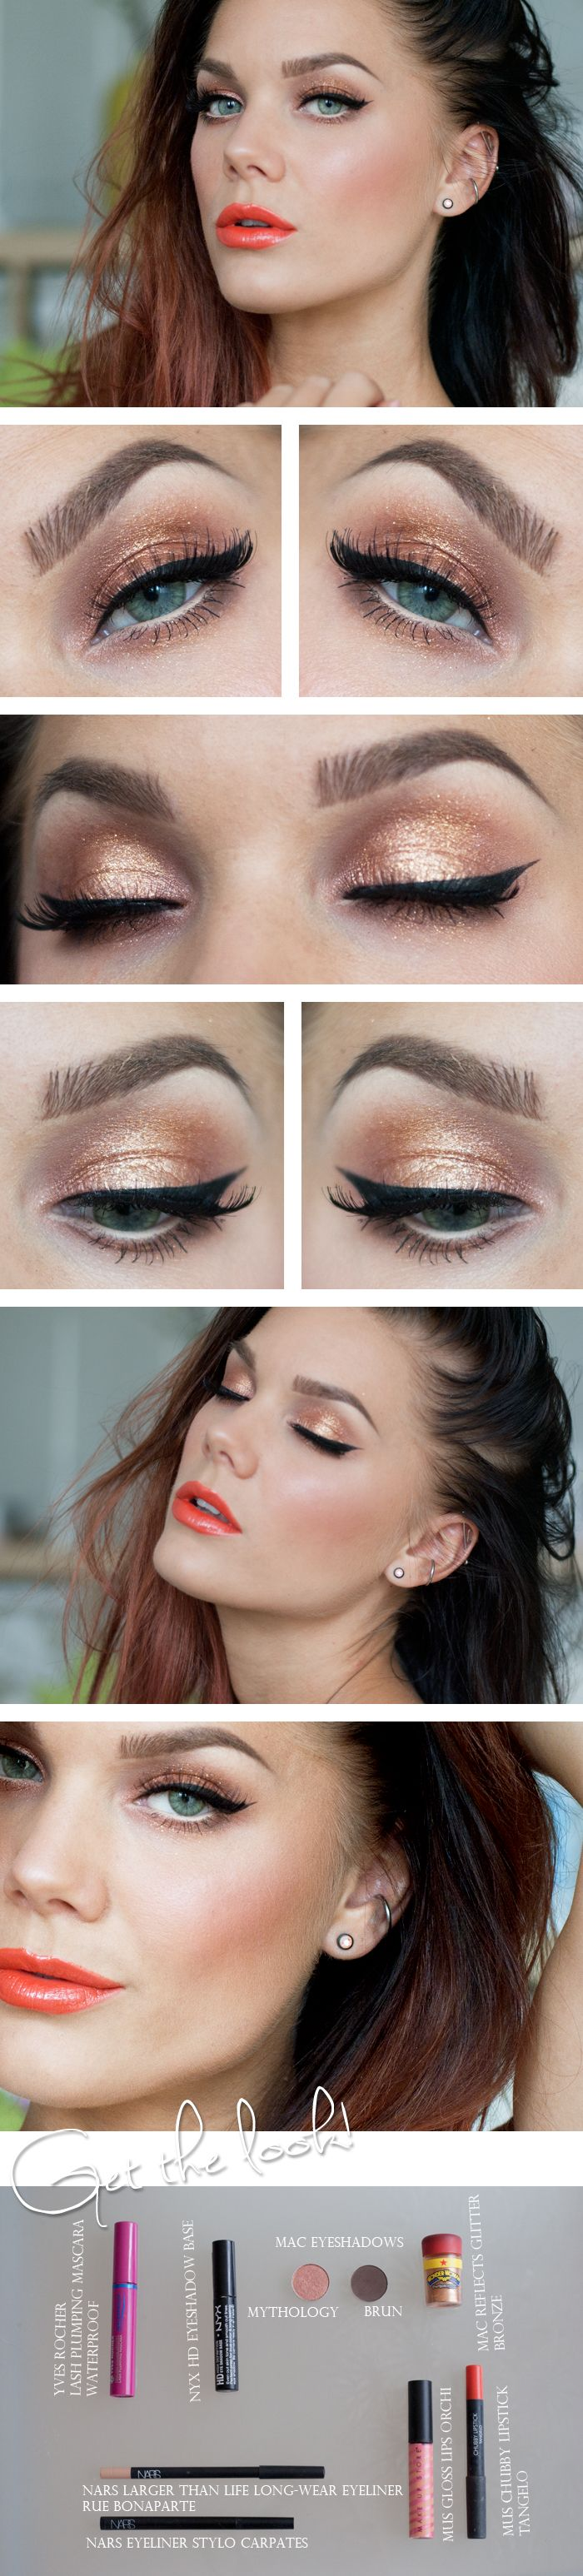 "Today's Look : ""Tangelo"" -Linda Hallberg (a gorgeous orange look from eyes to cheeks to lips! This is a beautiful summer look!)07/30/13"